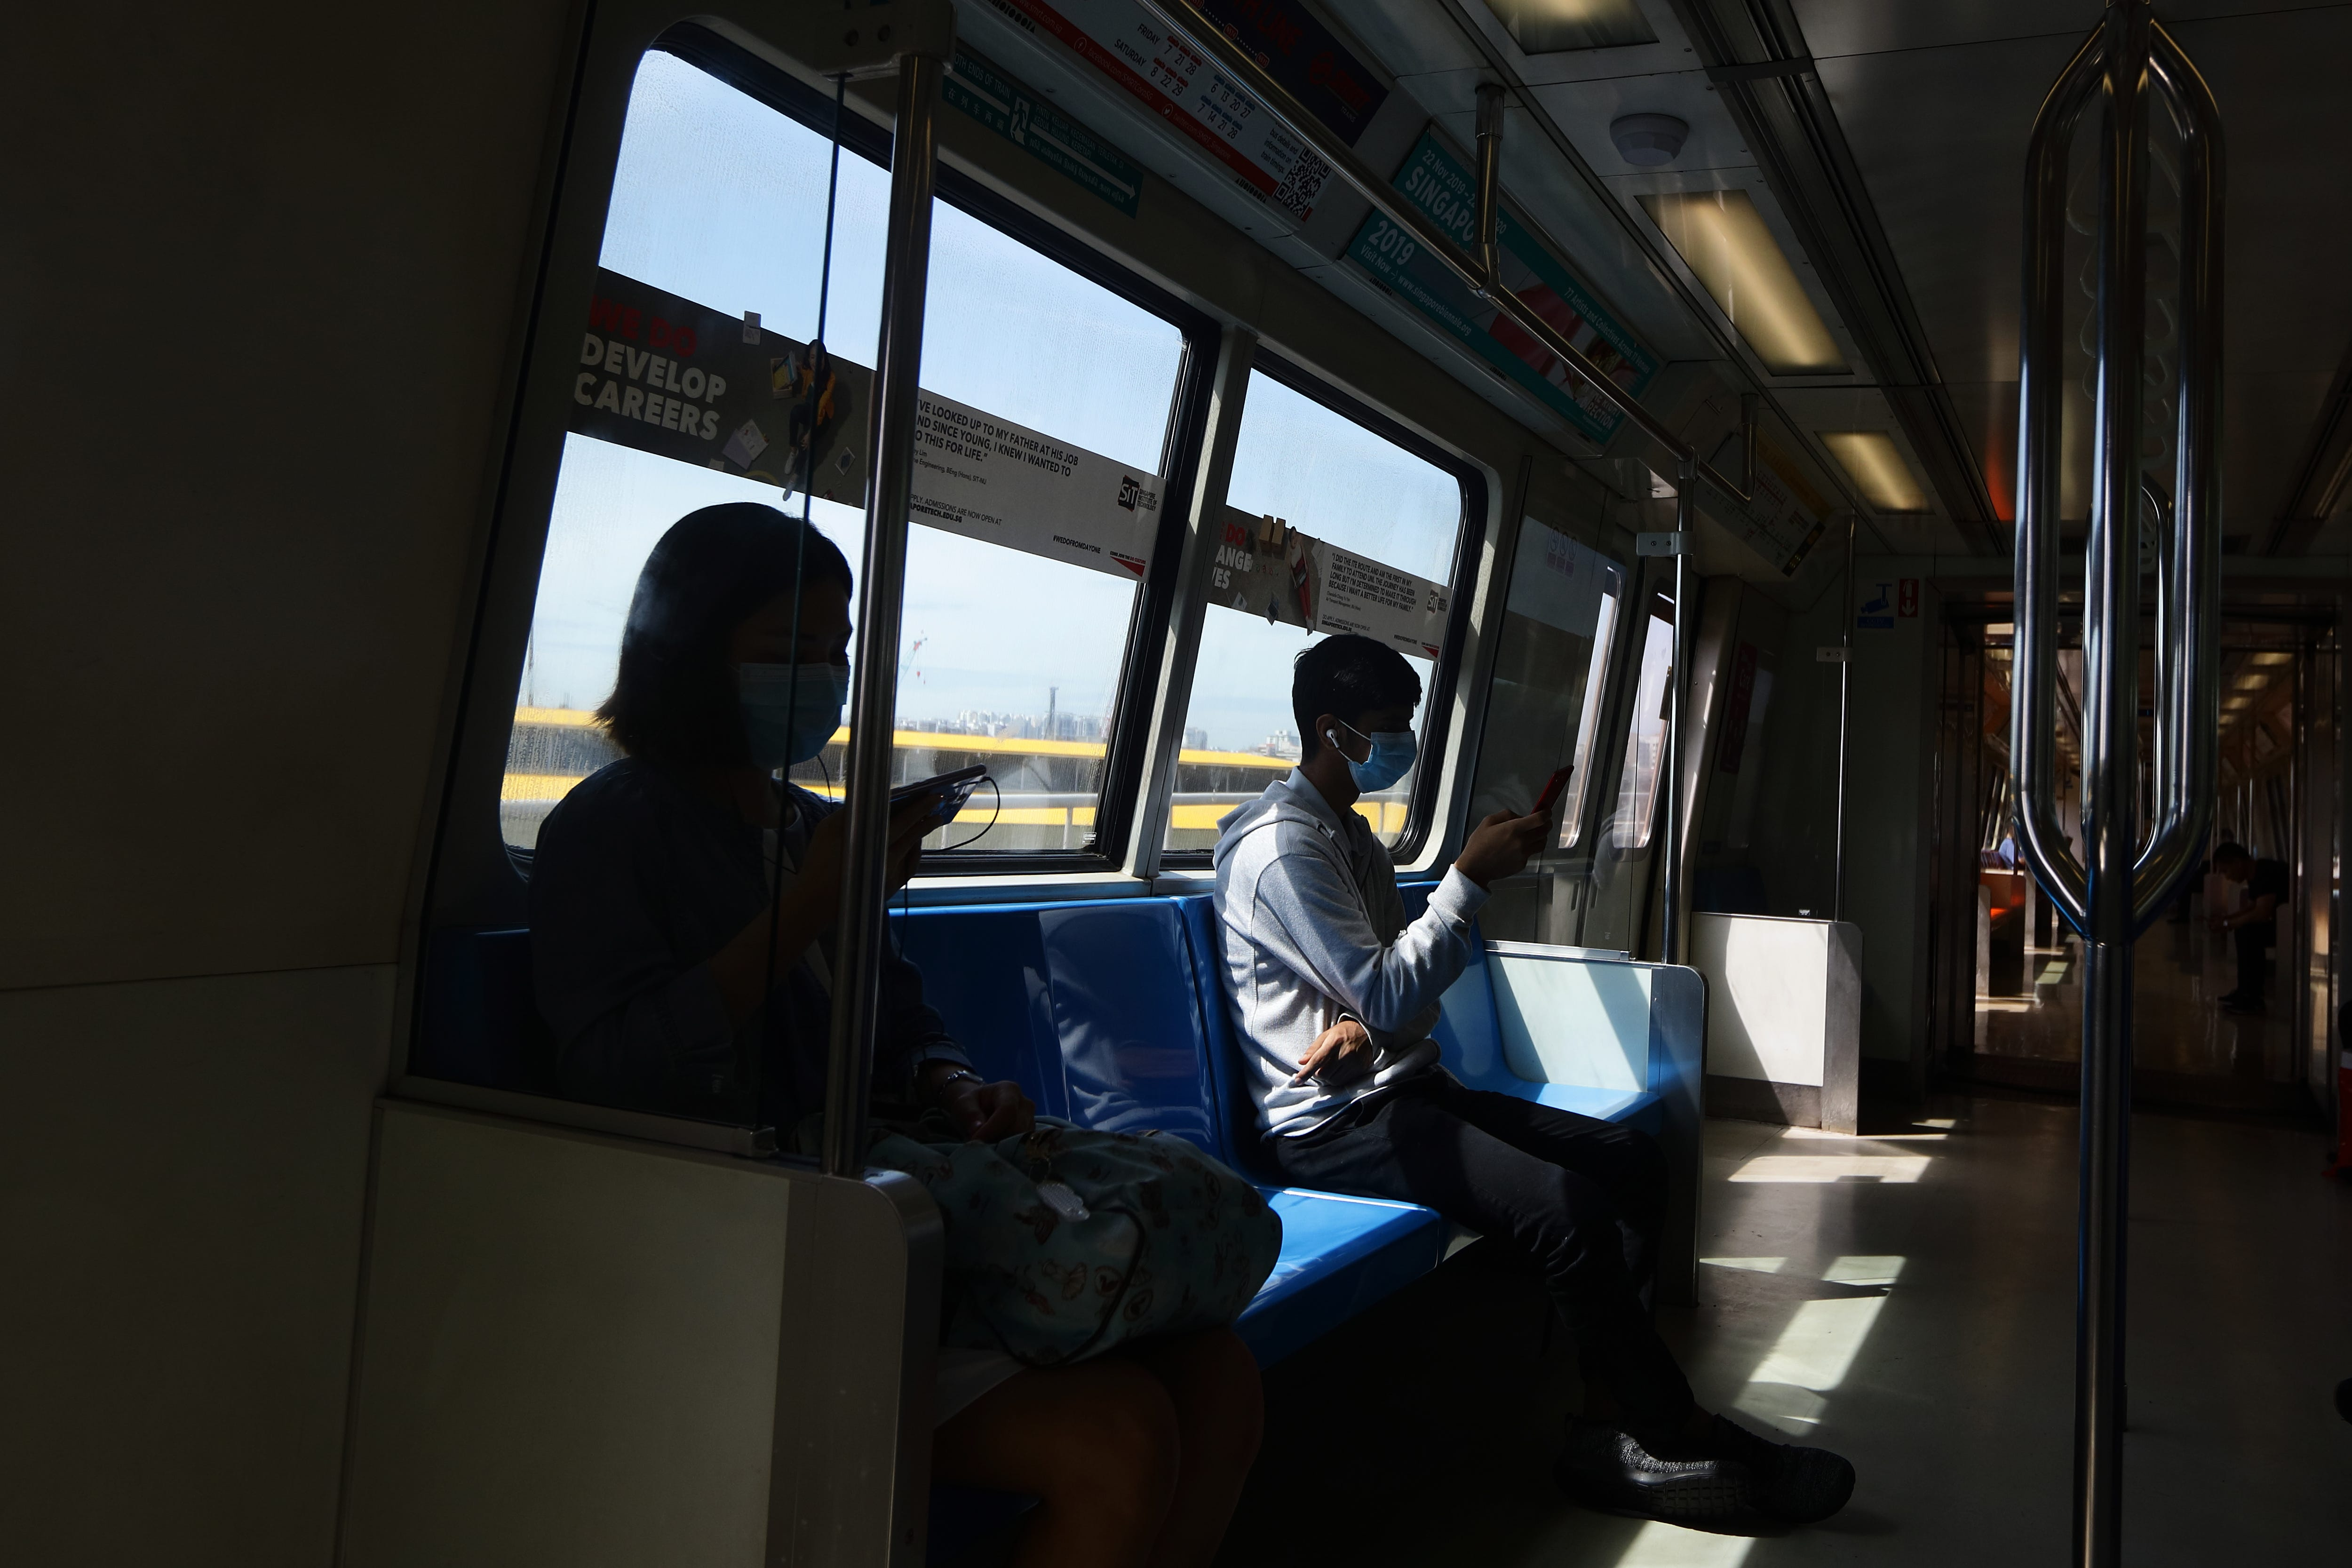 Passengers in Singapore wear protective masks on a train Jan. 30, 2020. Singapore confirmed its first cases of the COVID-19 virus in late January.